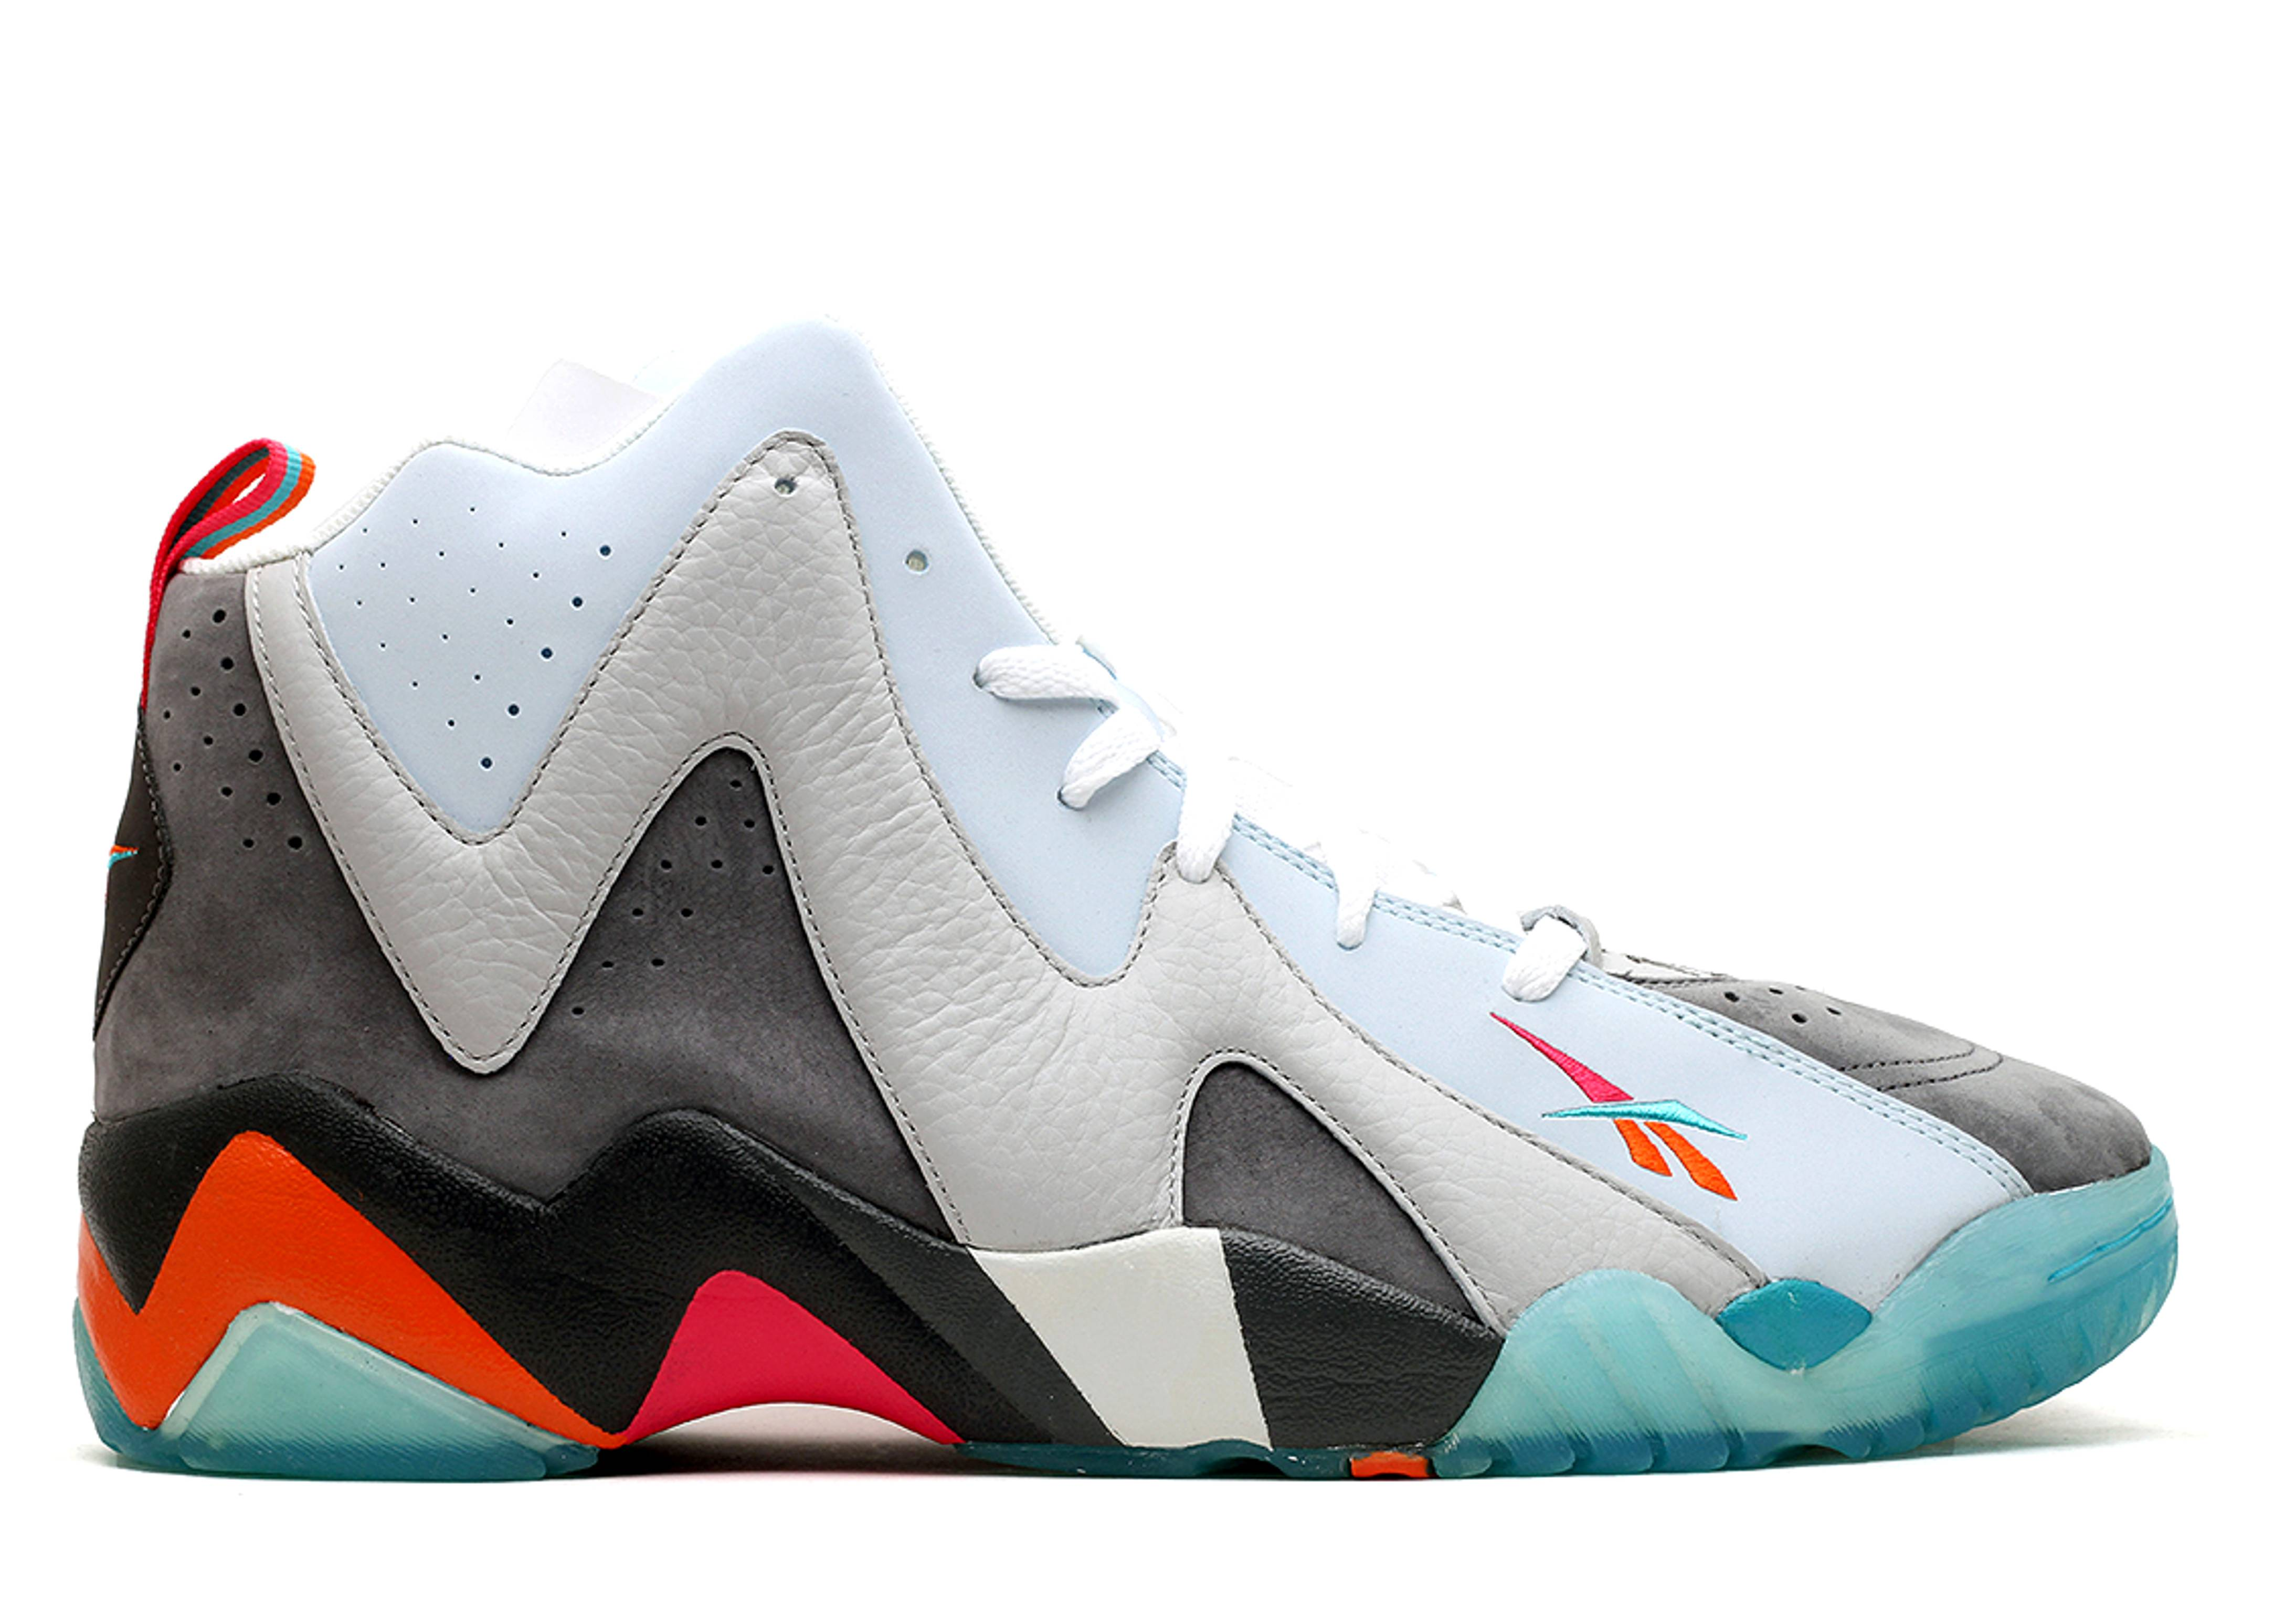 """kamikaze 2 mid """"packer shoes w/ m&n jersey"""""""